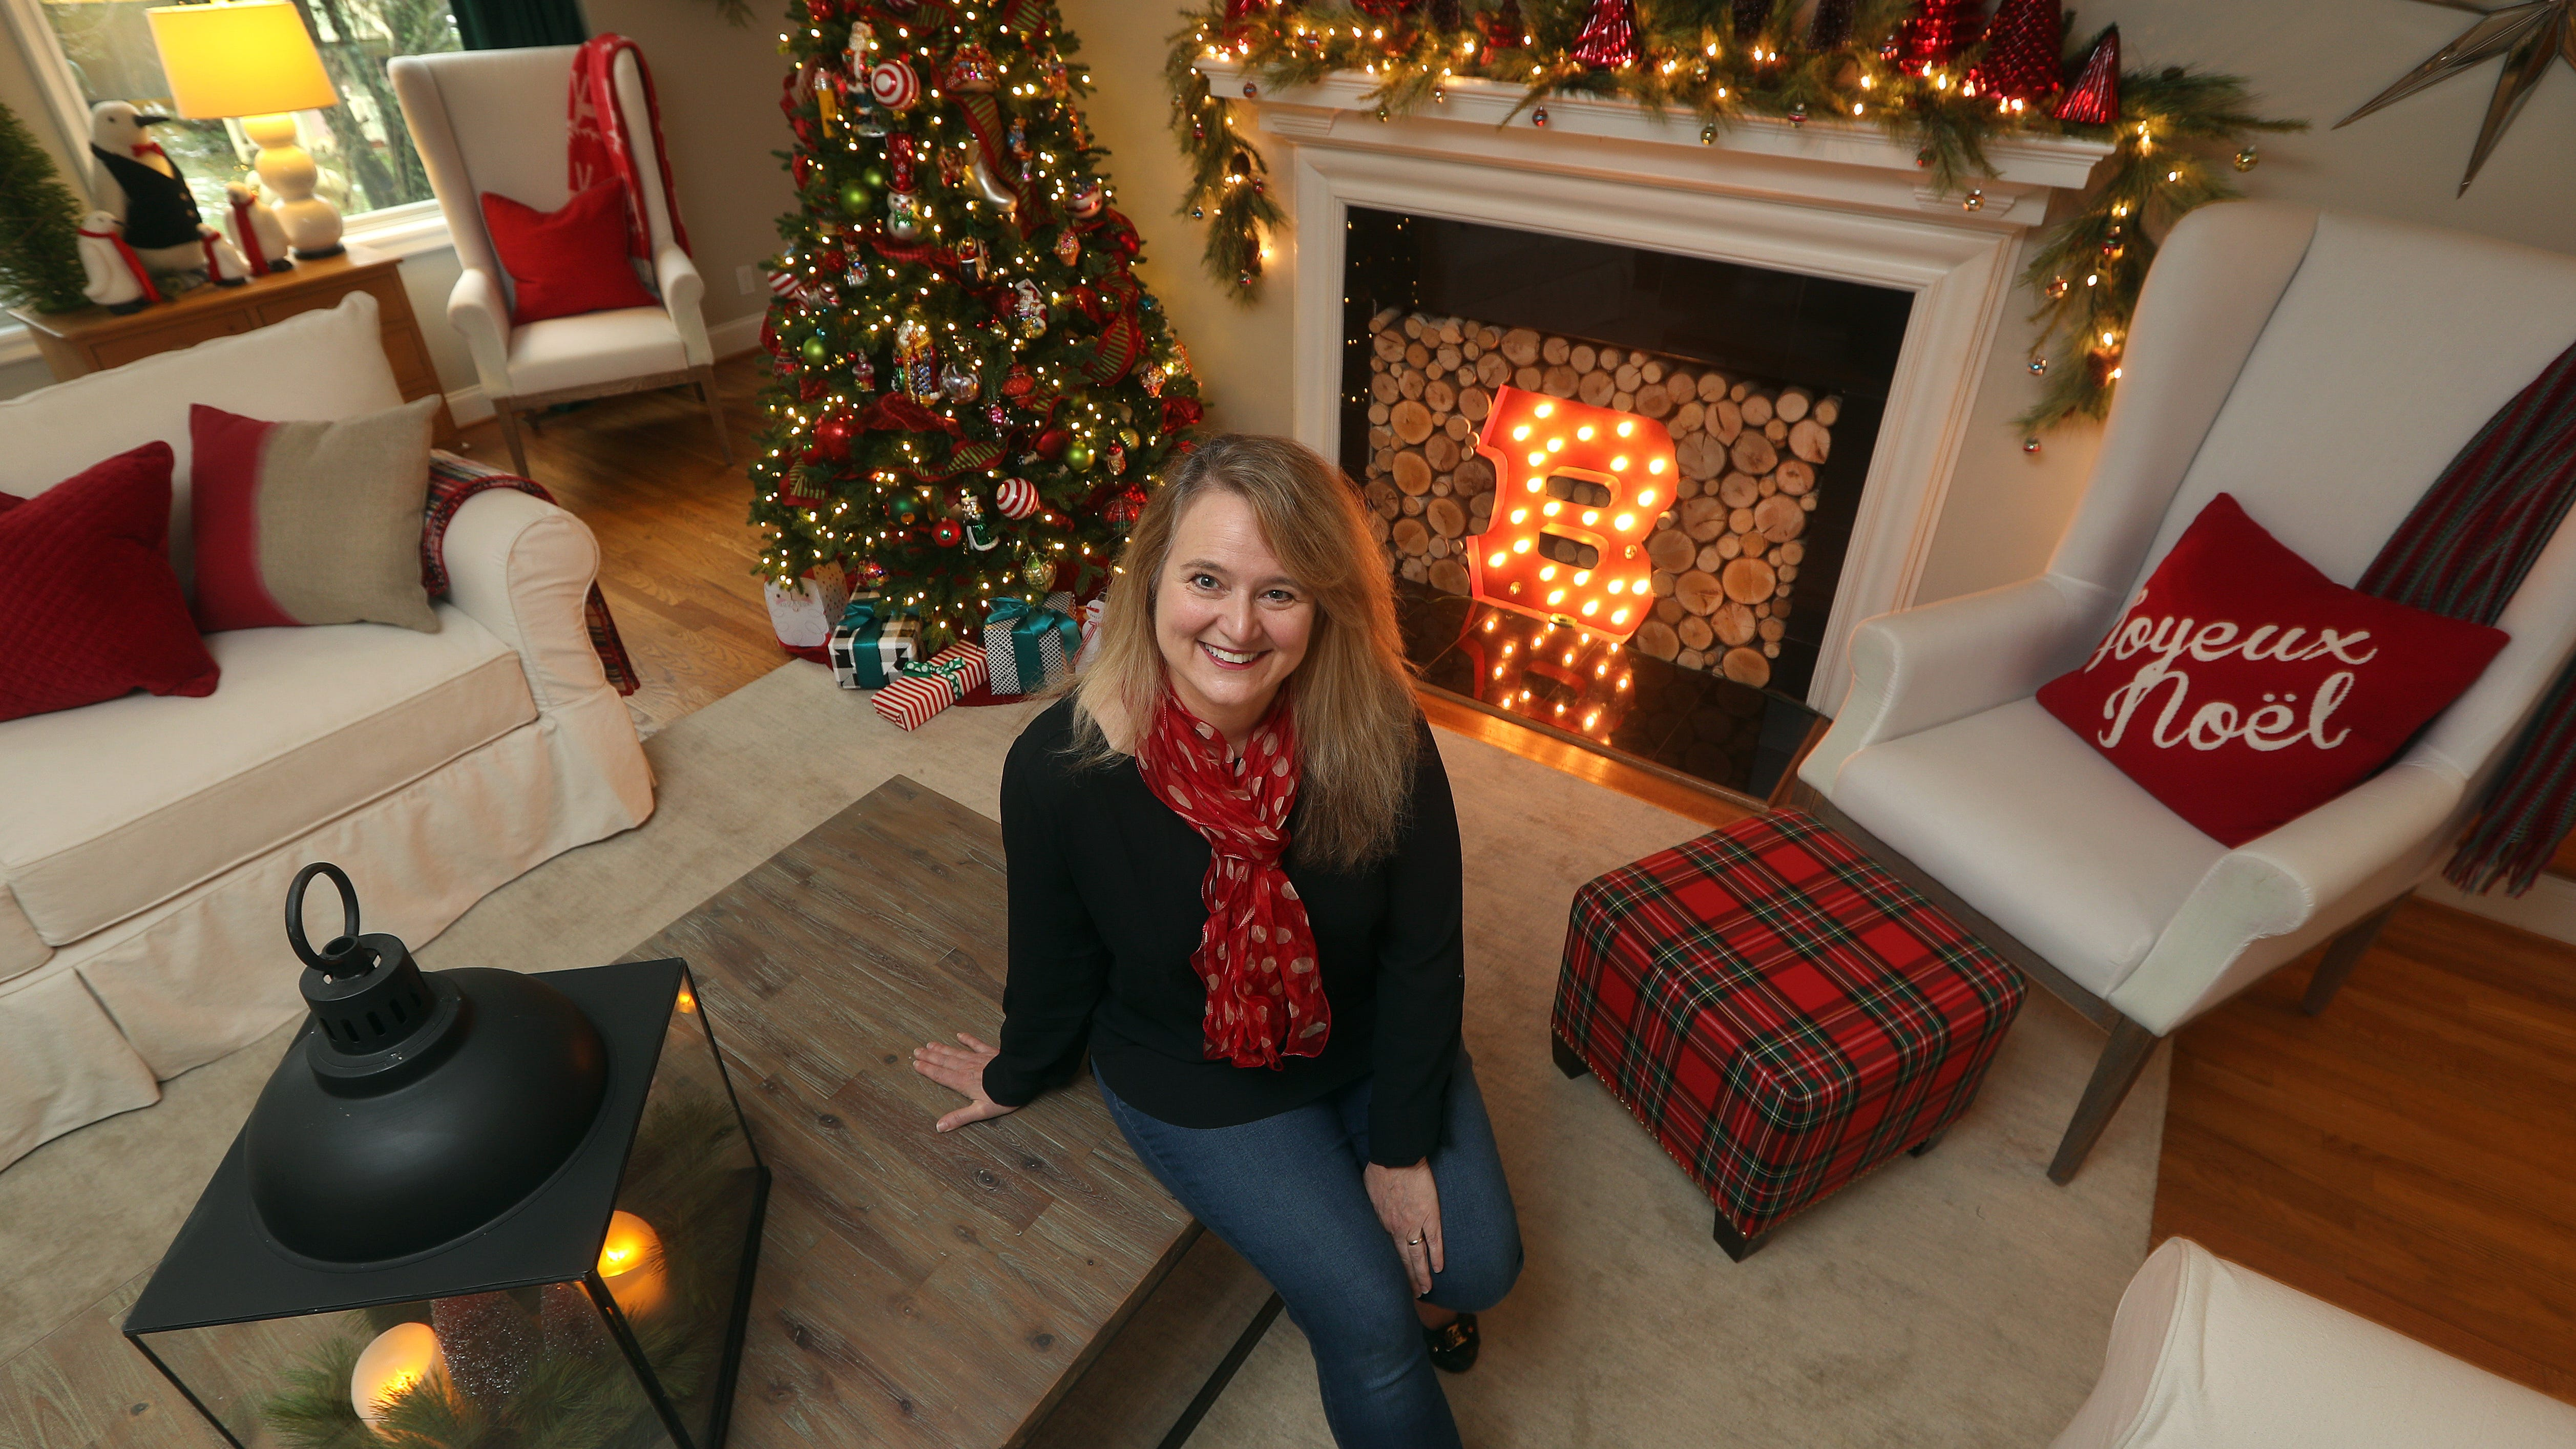 Decorator Amie Freling-Brown says it's easy and inexpensive to make your house more festive for the holidays.